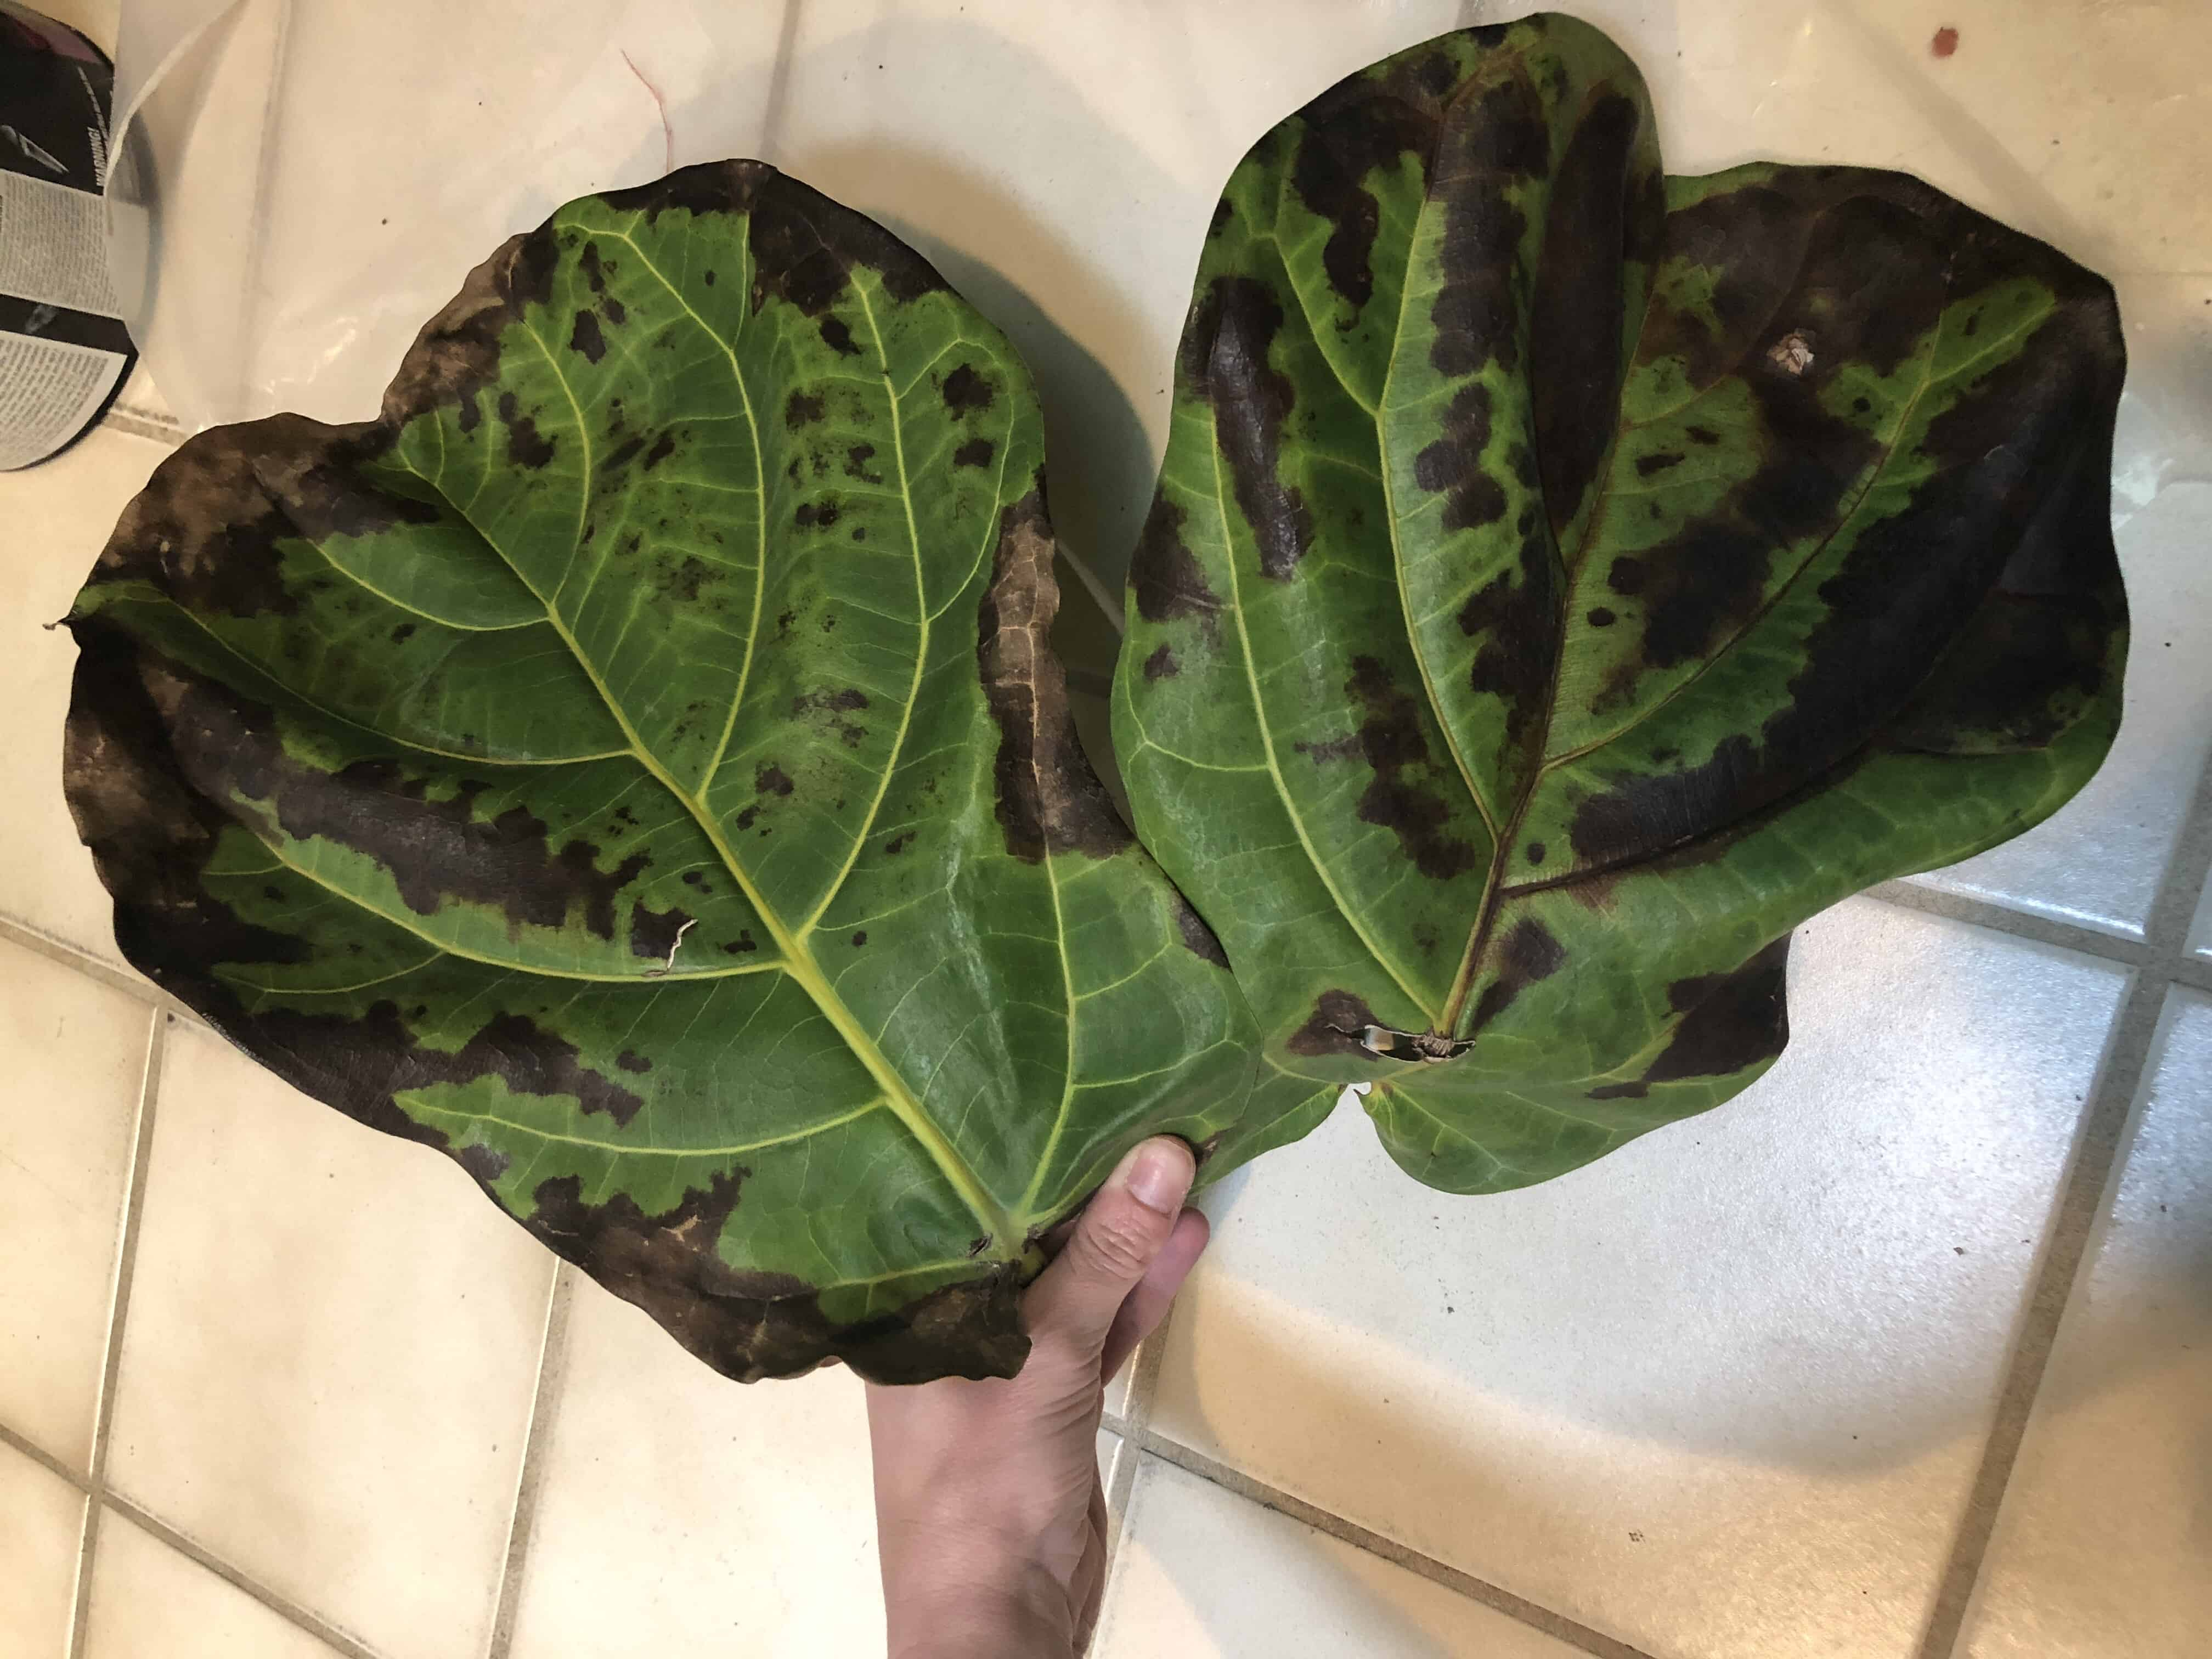 I Purchased My Fiddle Leaf Fig Tree From Home Depot About Two Weeks Ago This Was The Only Place In Town That Had Trees And Too Scared To Order